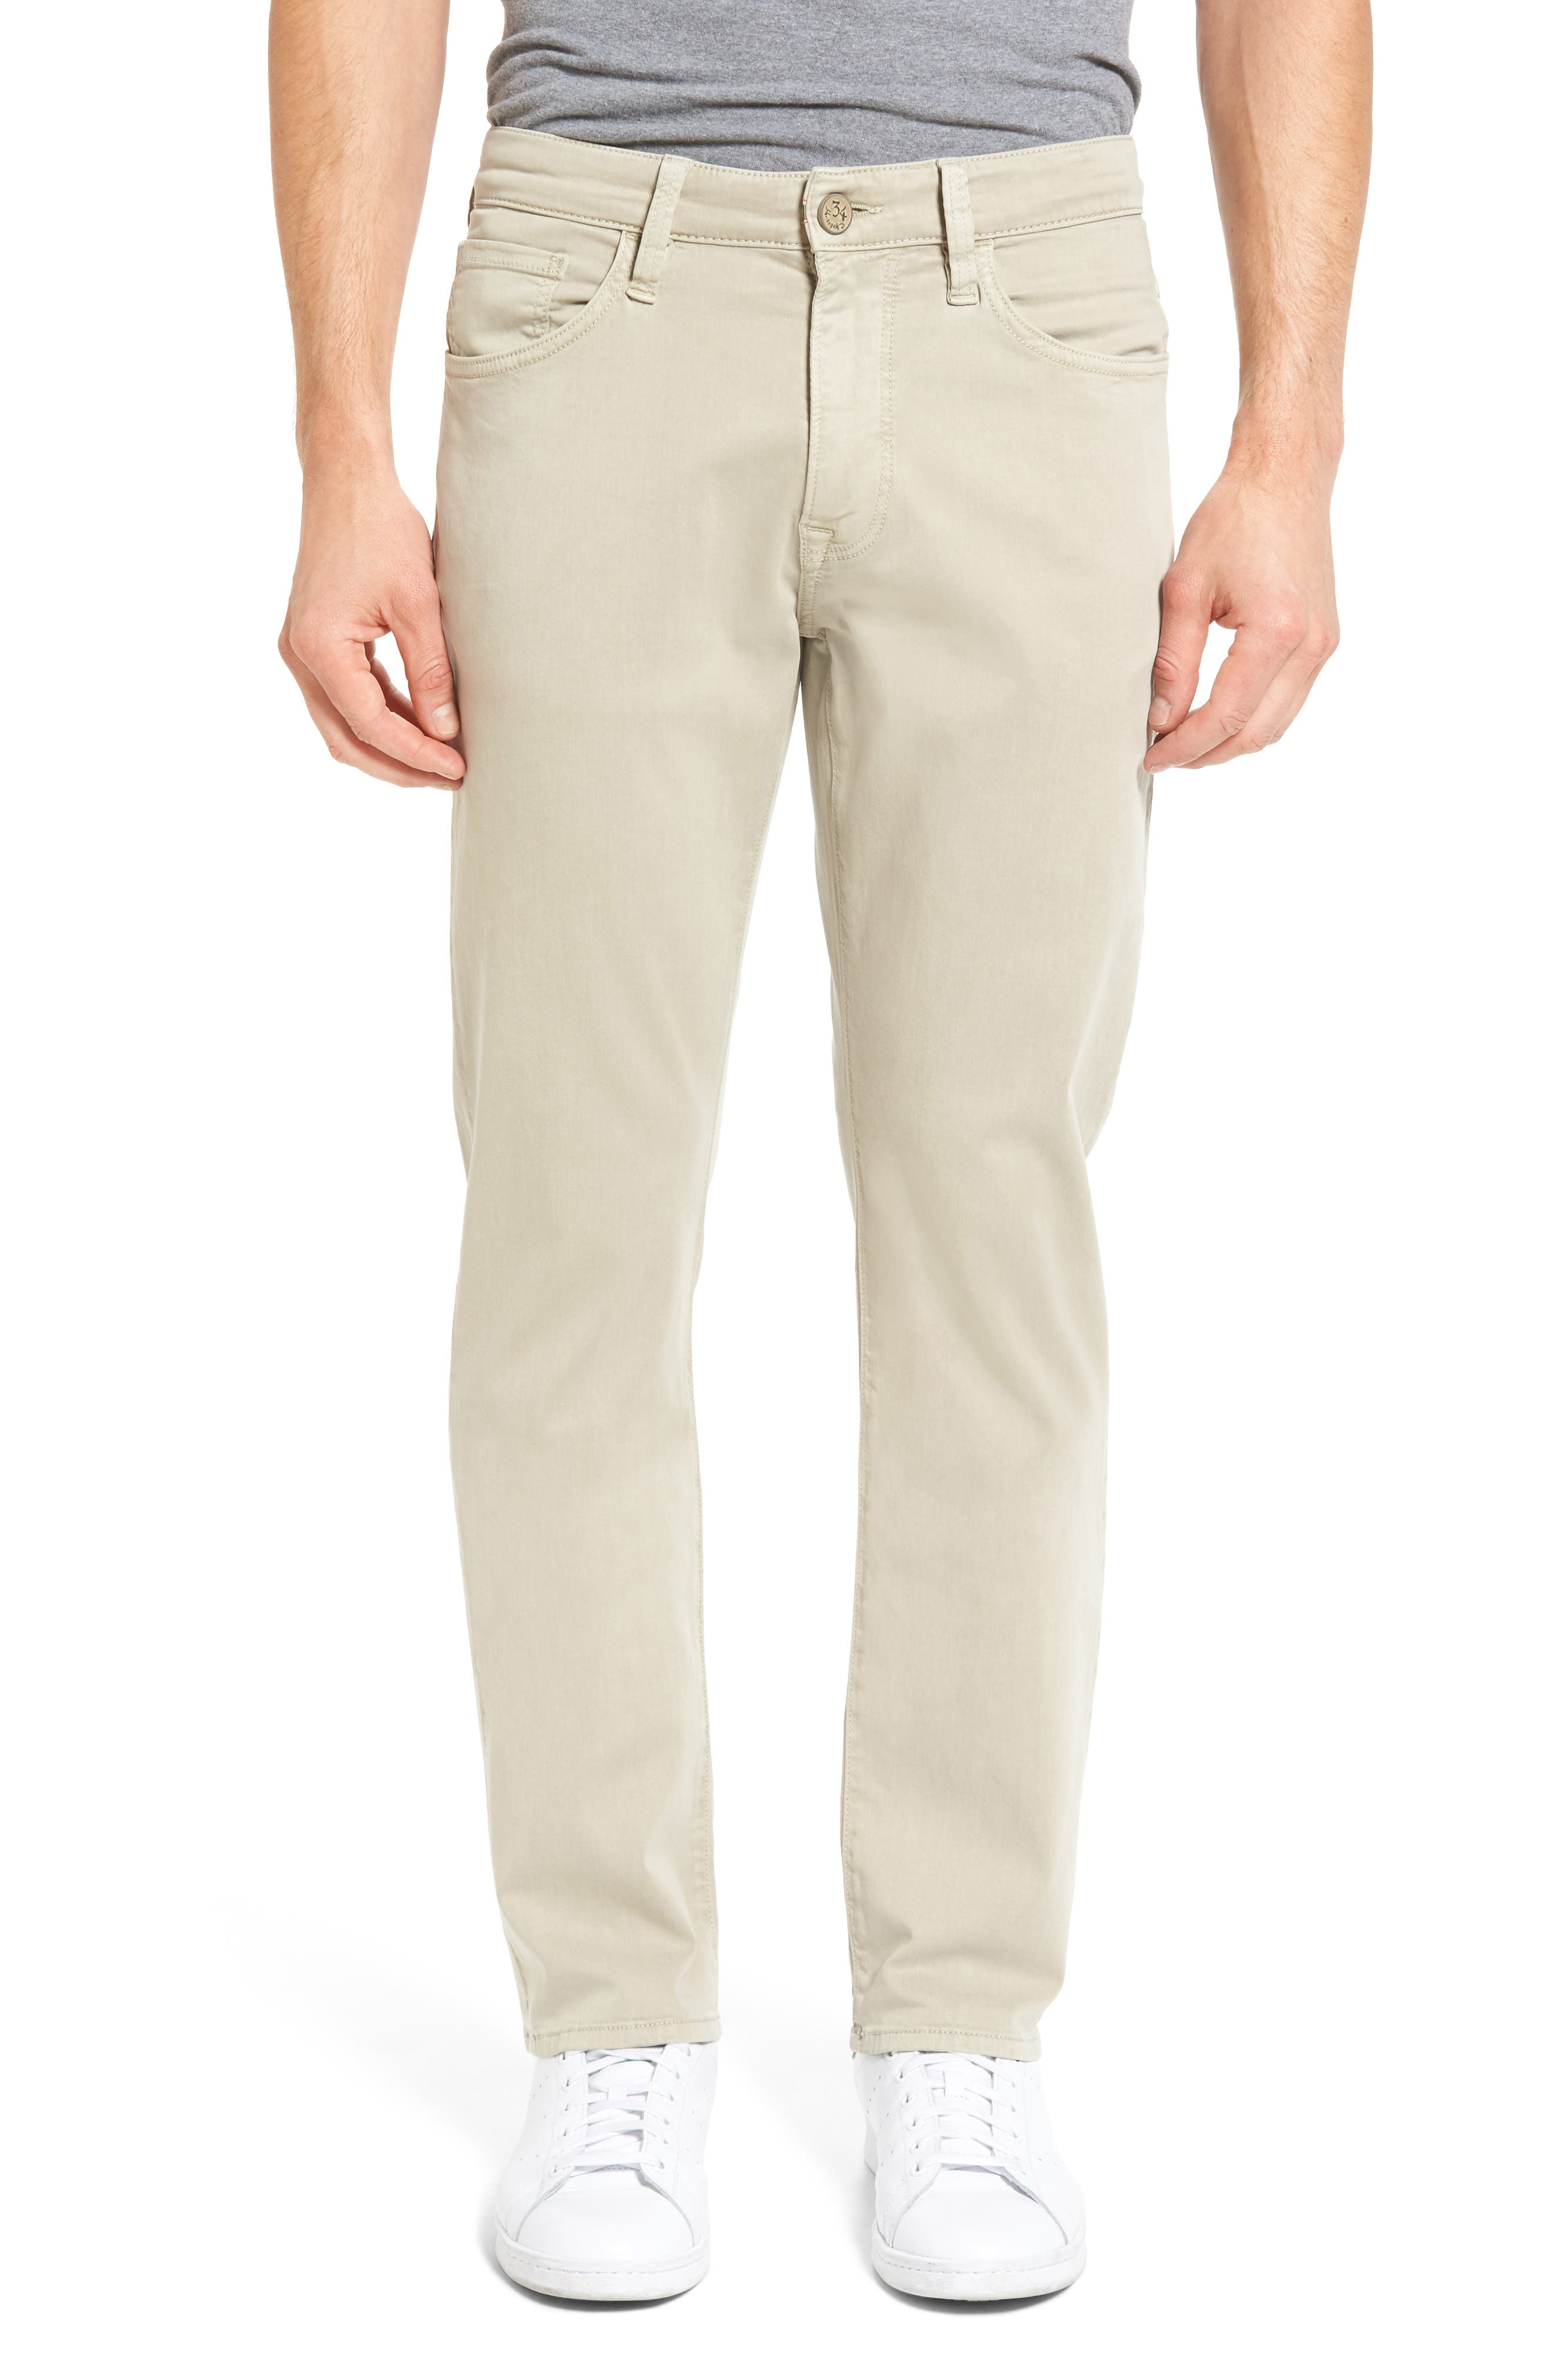 Courage Straight Leg Jeans,                             Main thumbnail 1, color,                             Stone Twill